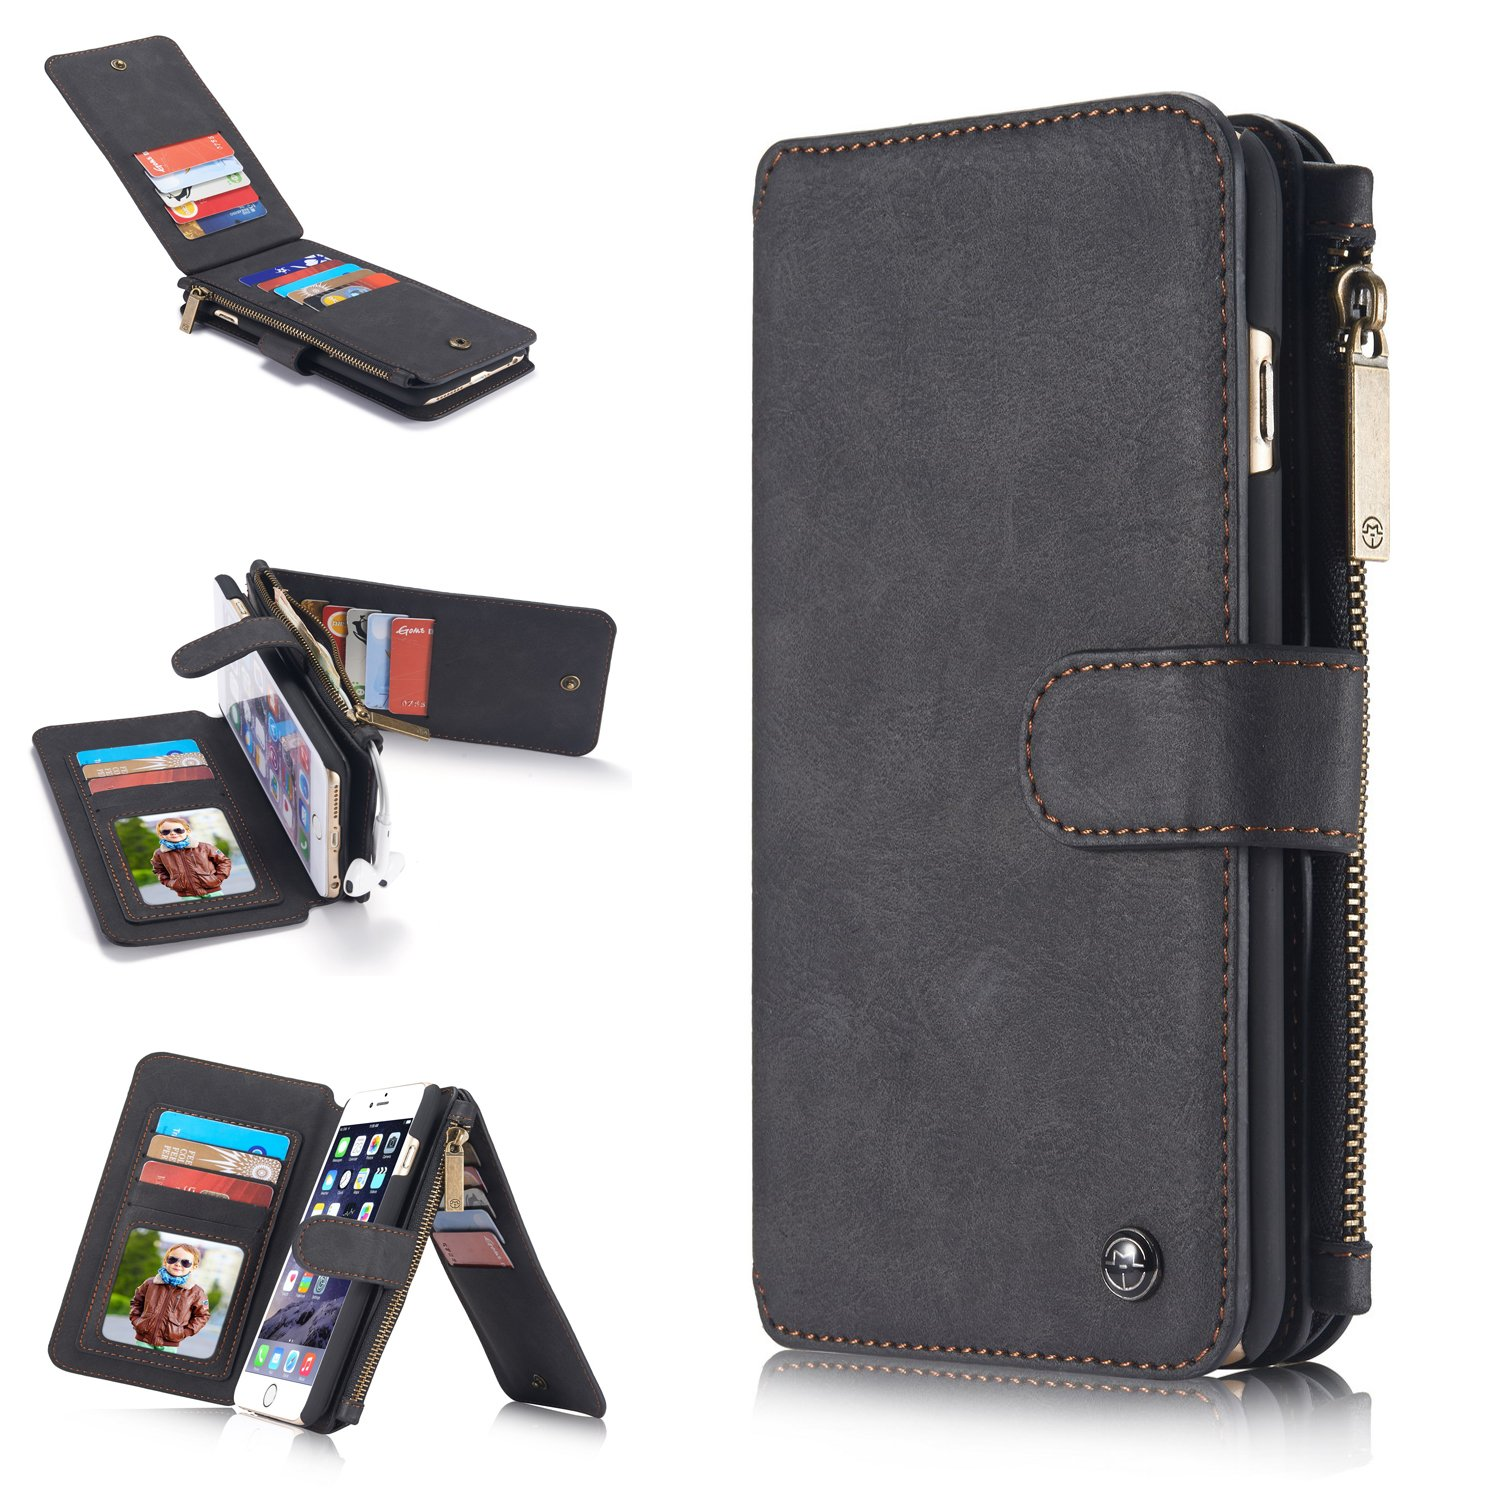 iPhone 6S Plus/6 Plus Wallet Case,KAIFX [2-in-1] Multifunction Advanced Flip Durable Leather Cash Holder Zipper Wallet Case With Removable Magnetic Hard Cover For iPhone 6/6S Plus(5.5'') (Black)